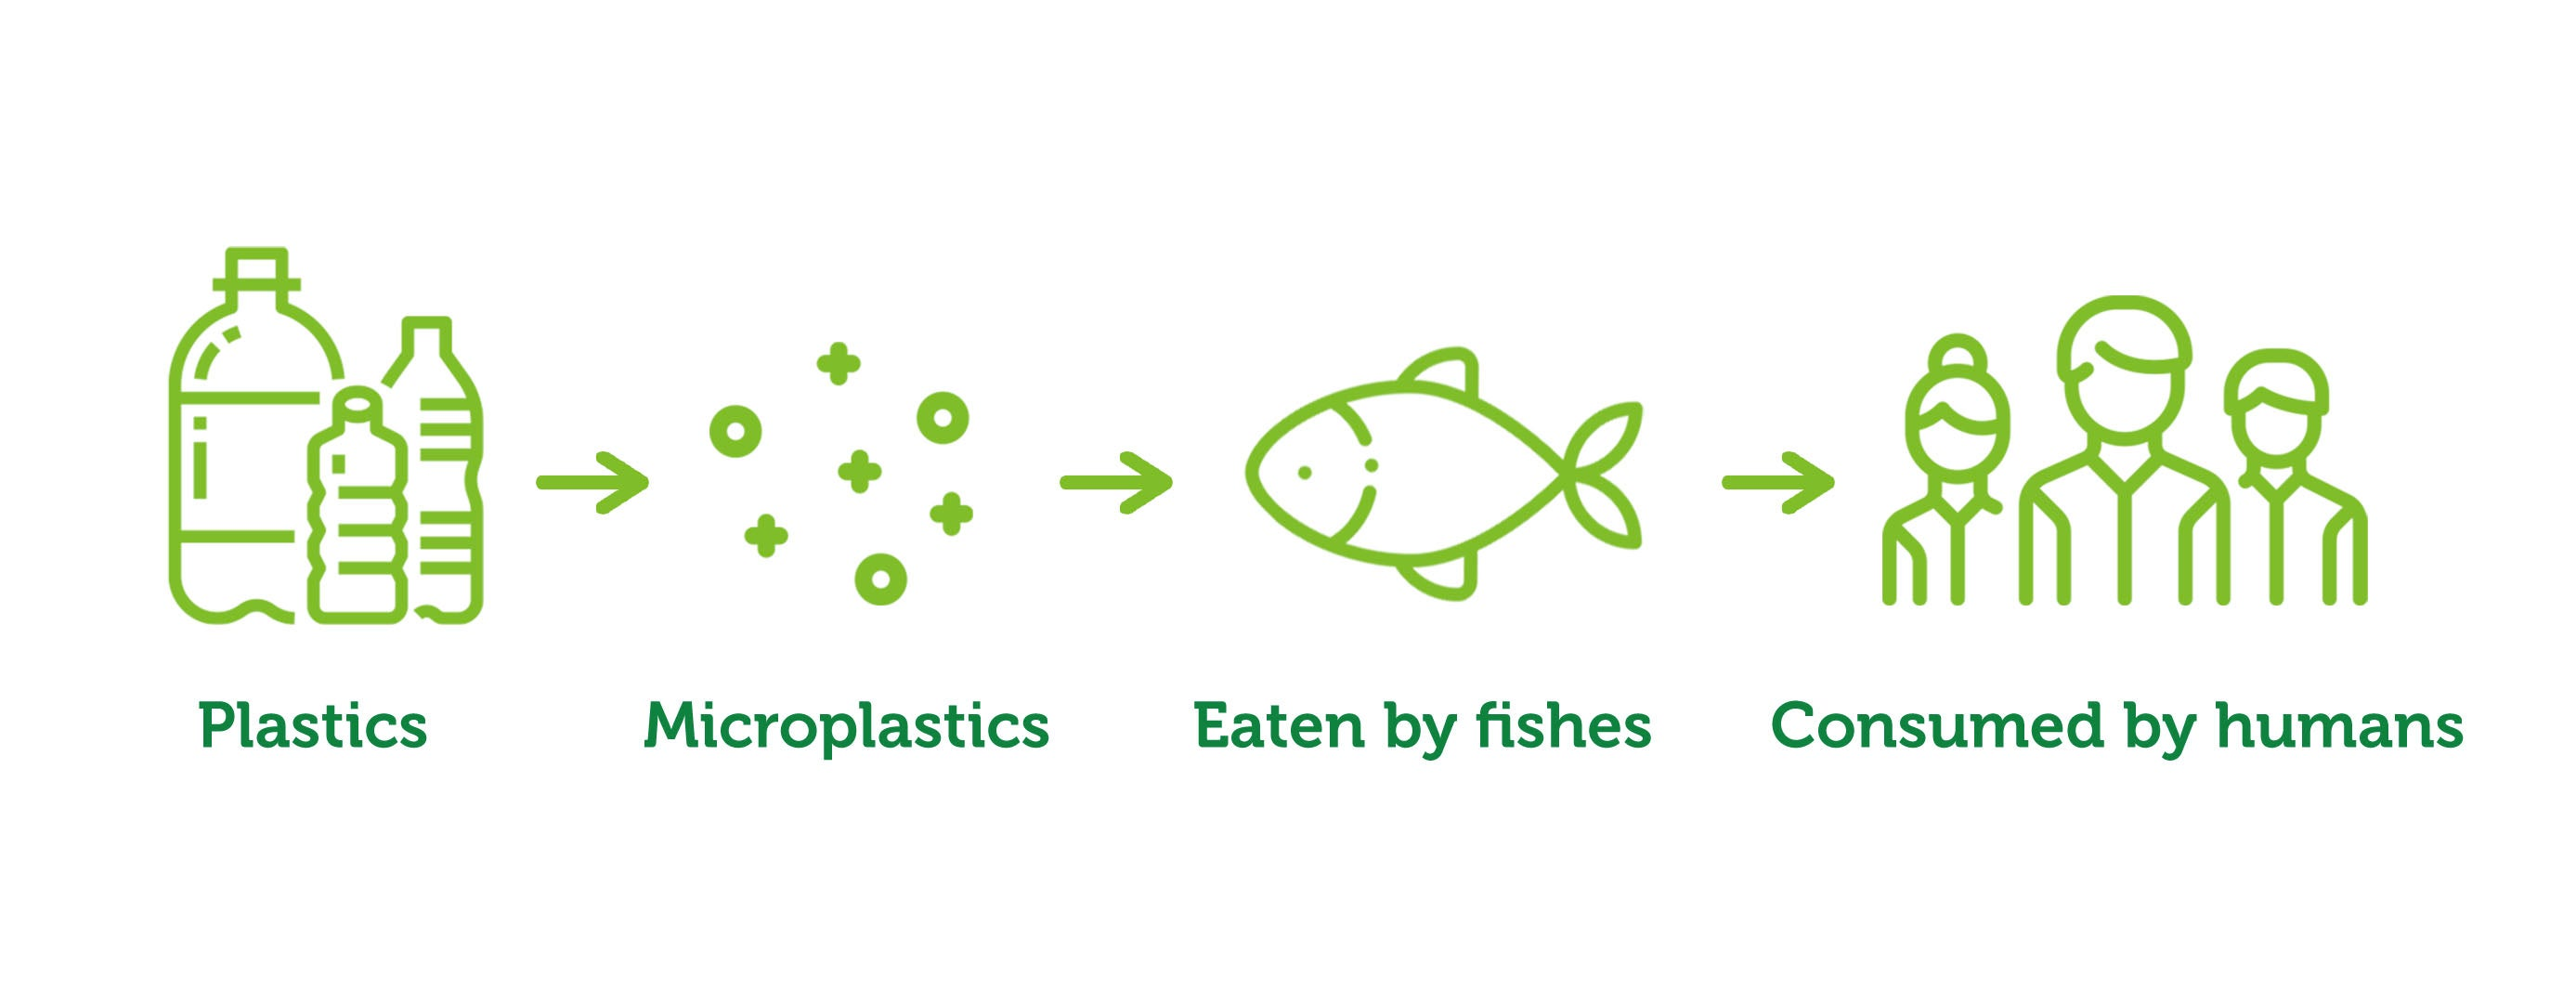 Microplastics contaminating the fish and by humans chain